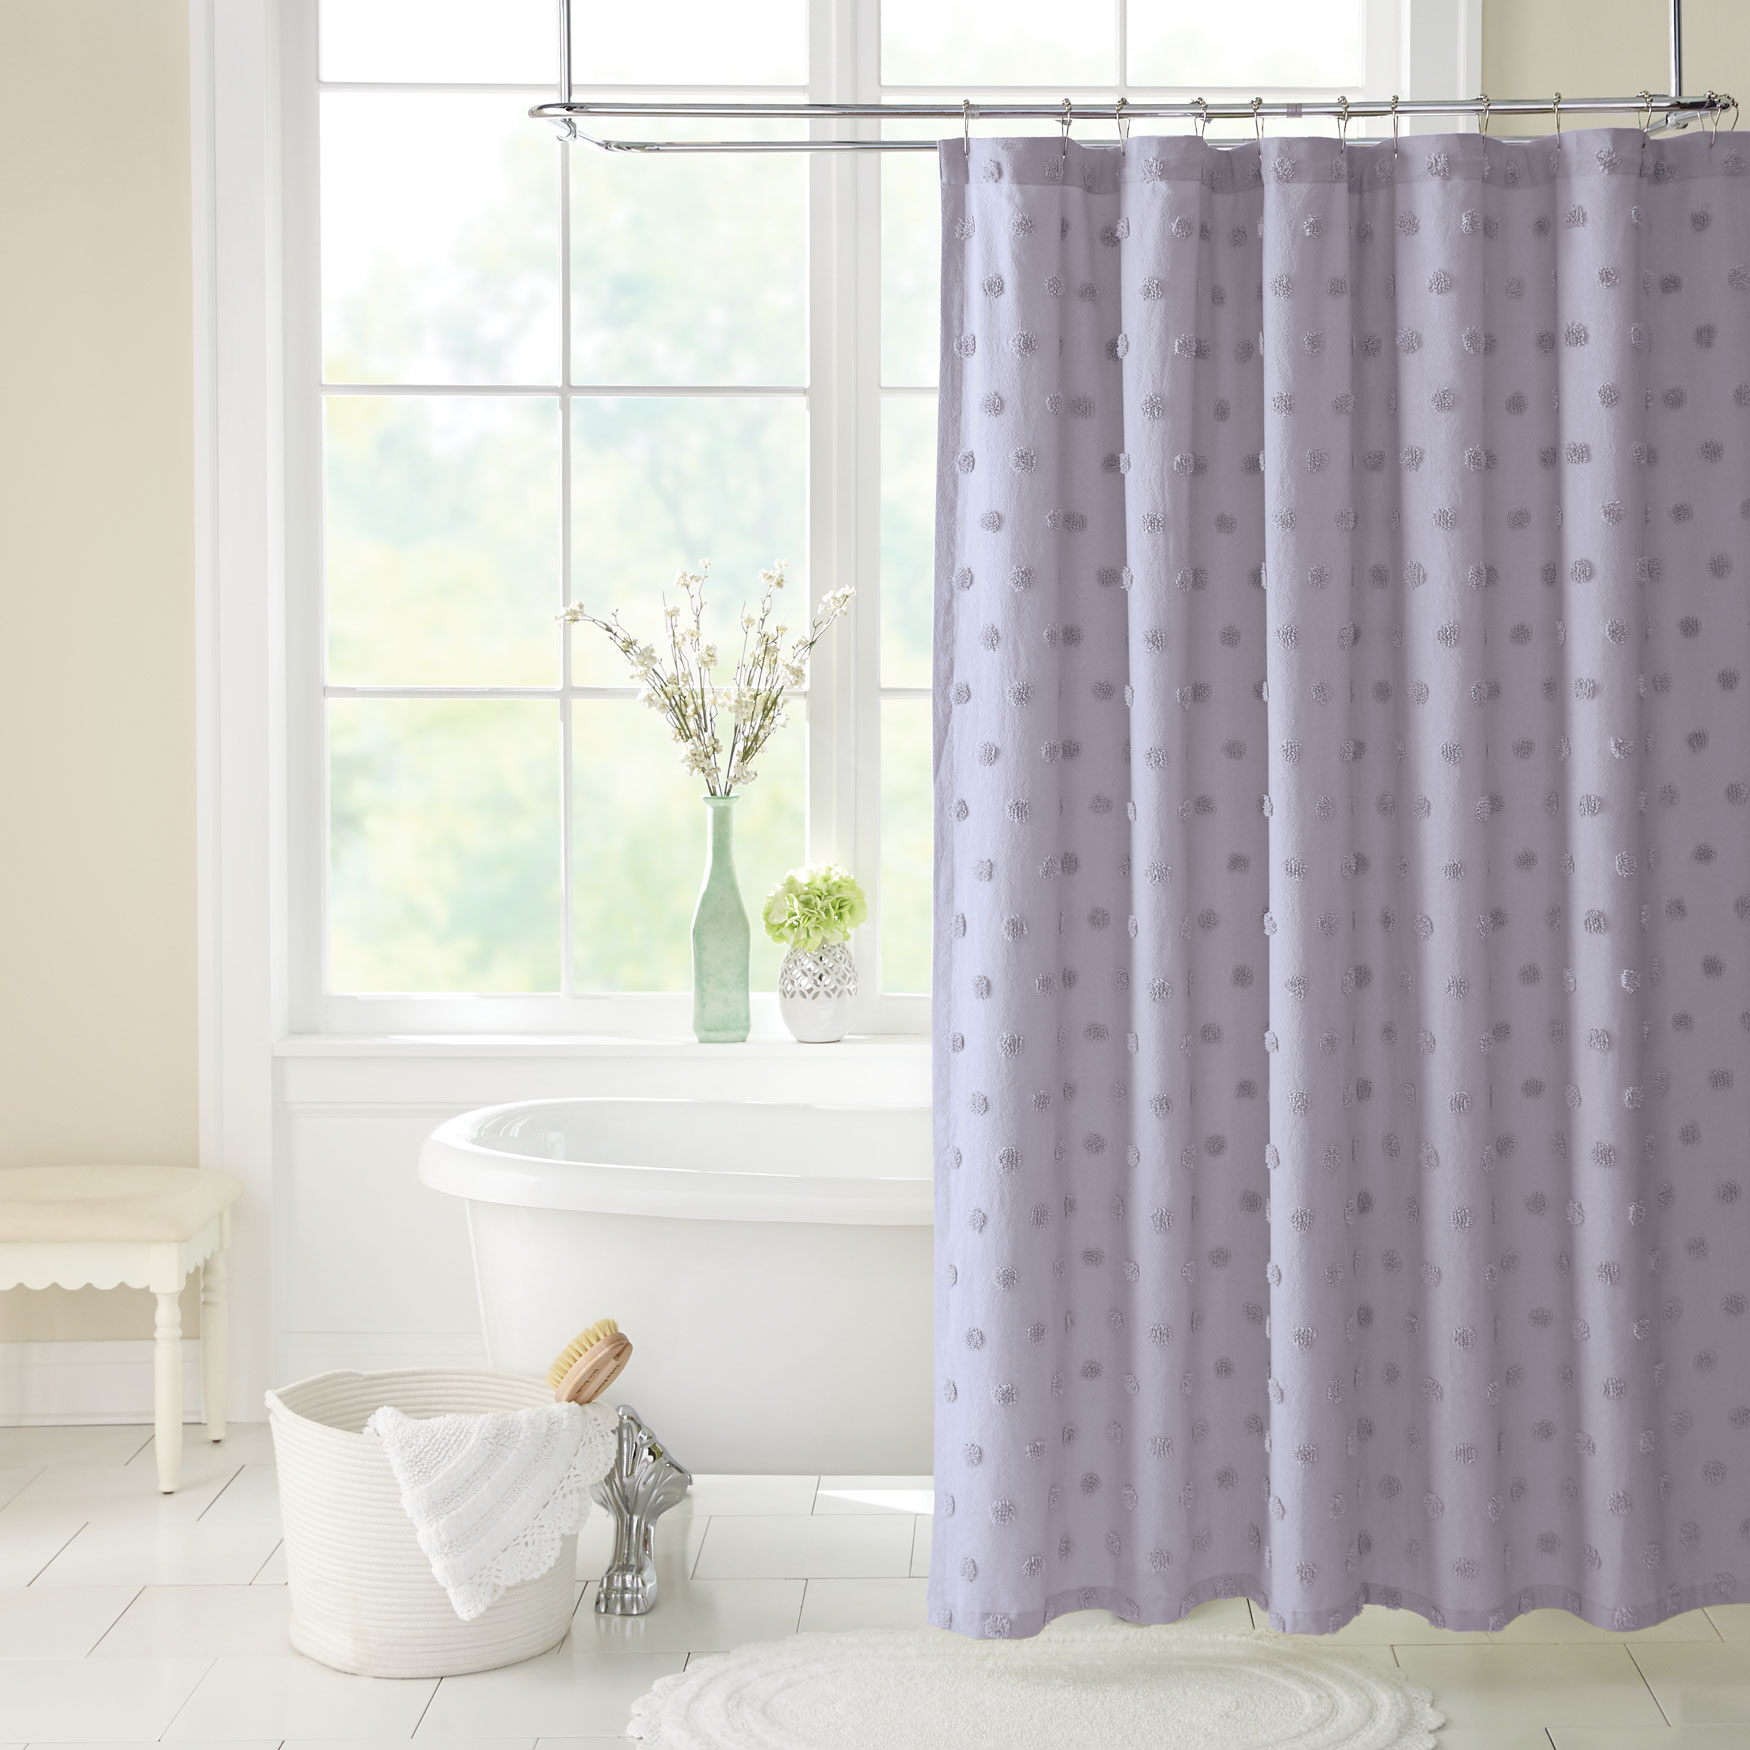 Georgia Chenille Shower Curtain,